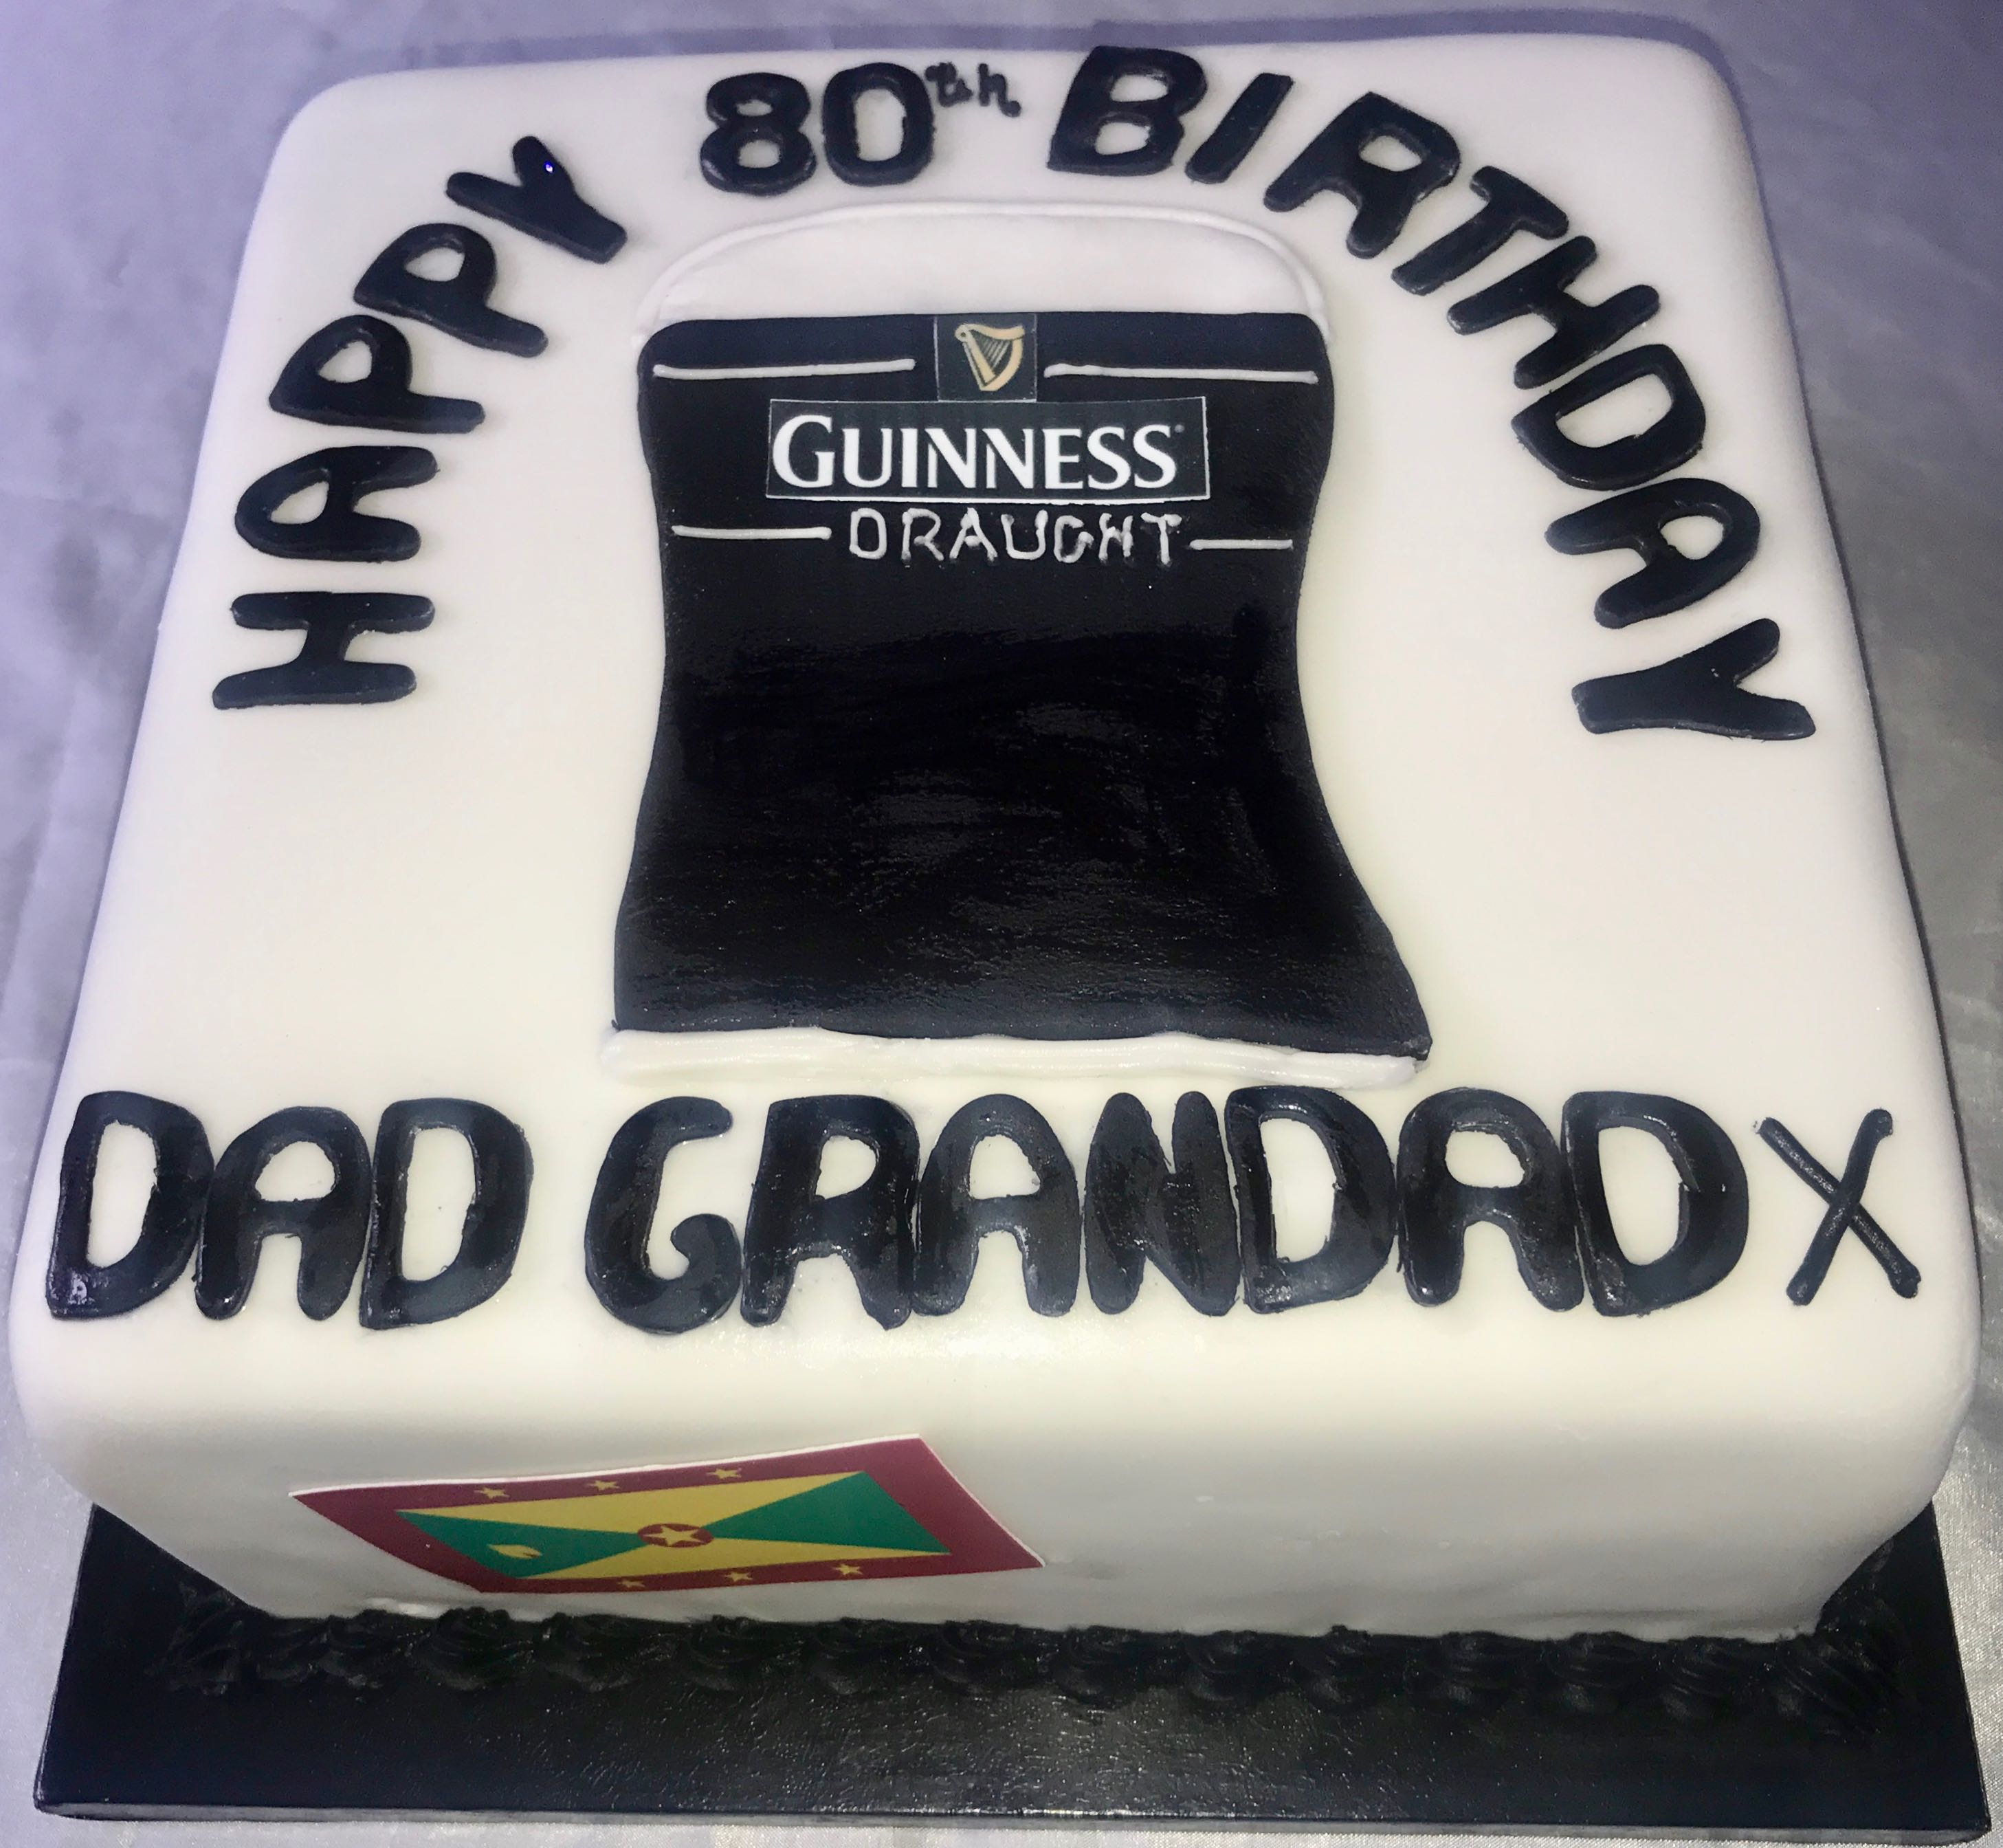 80th Birthday Guinness Birthday Cake